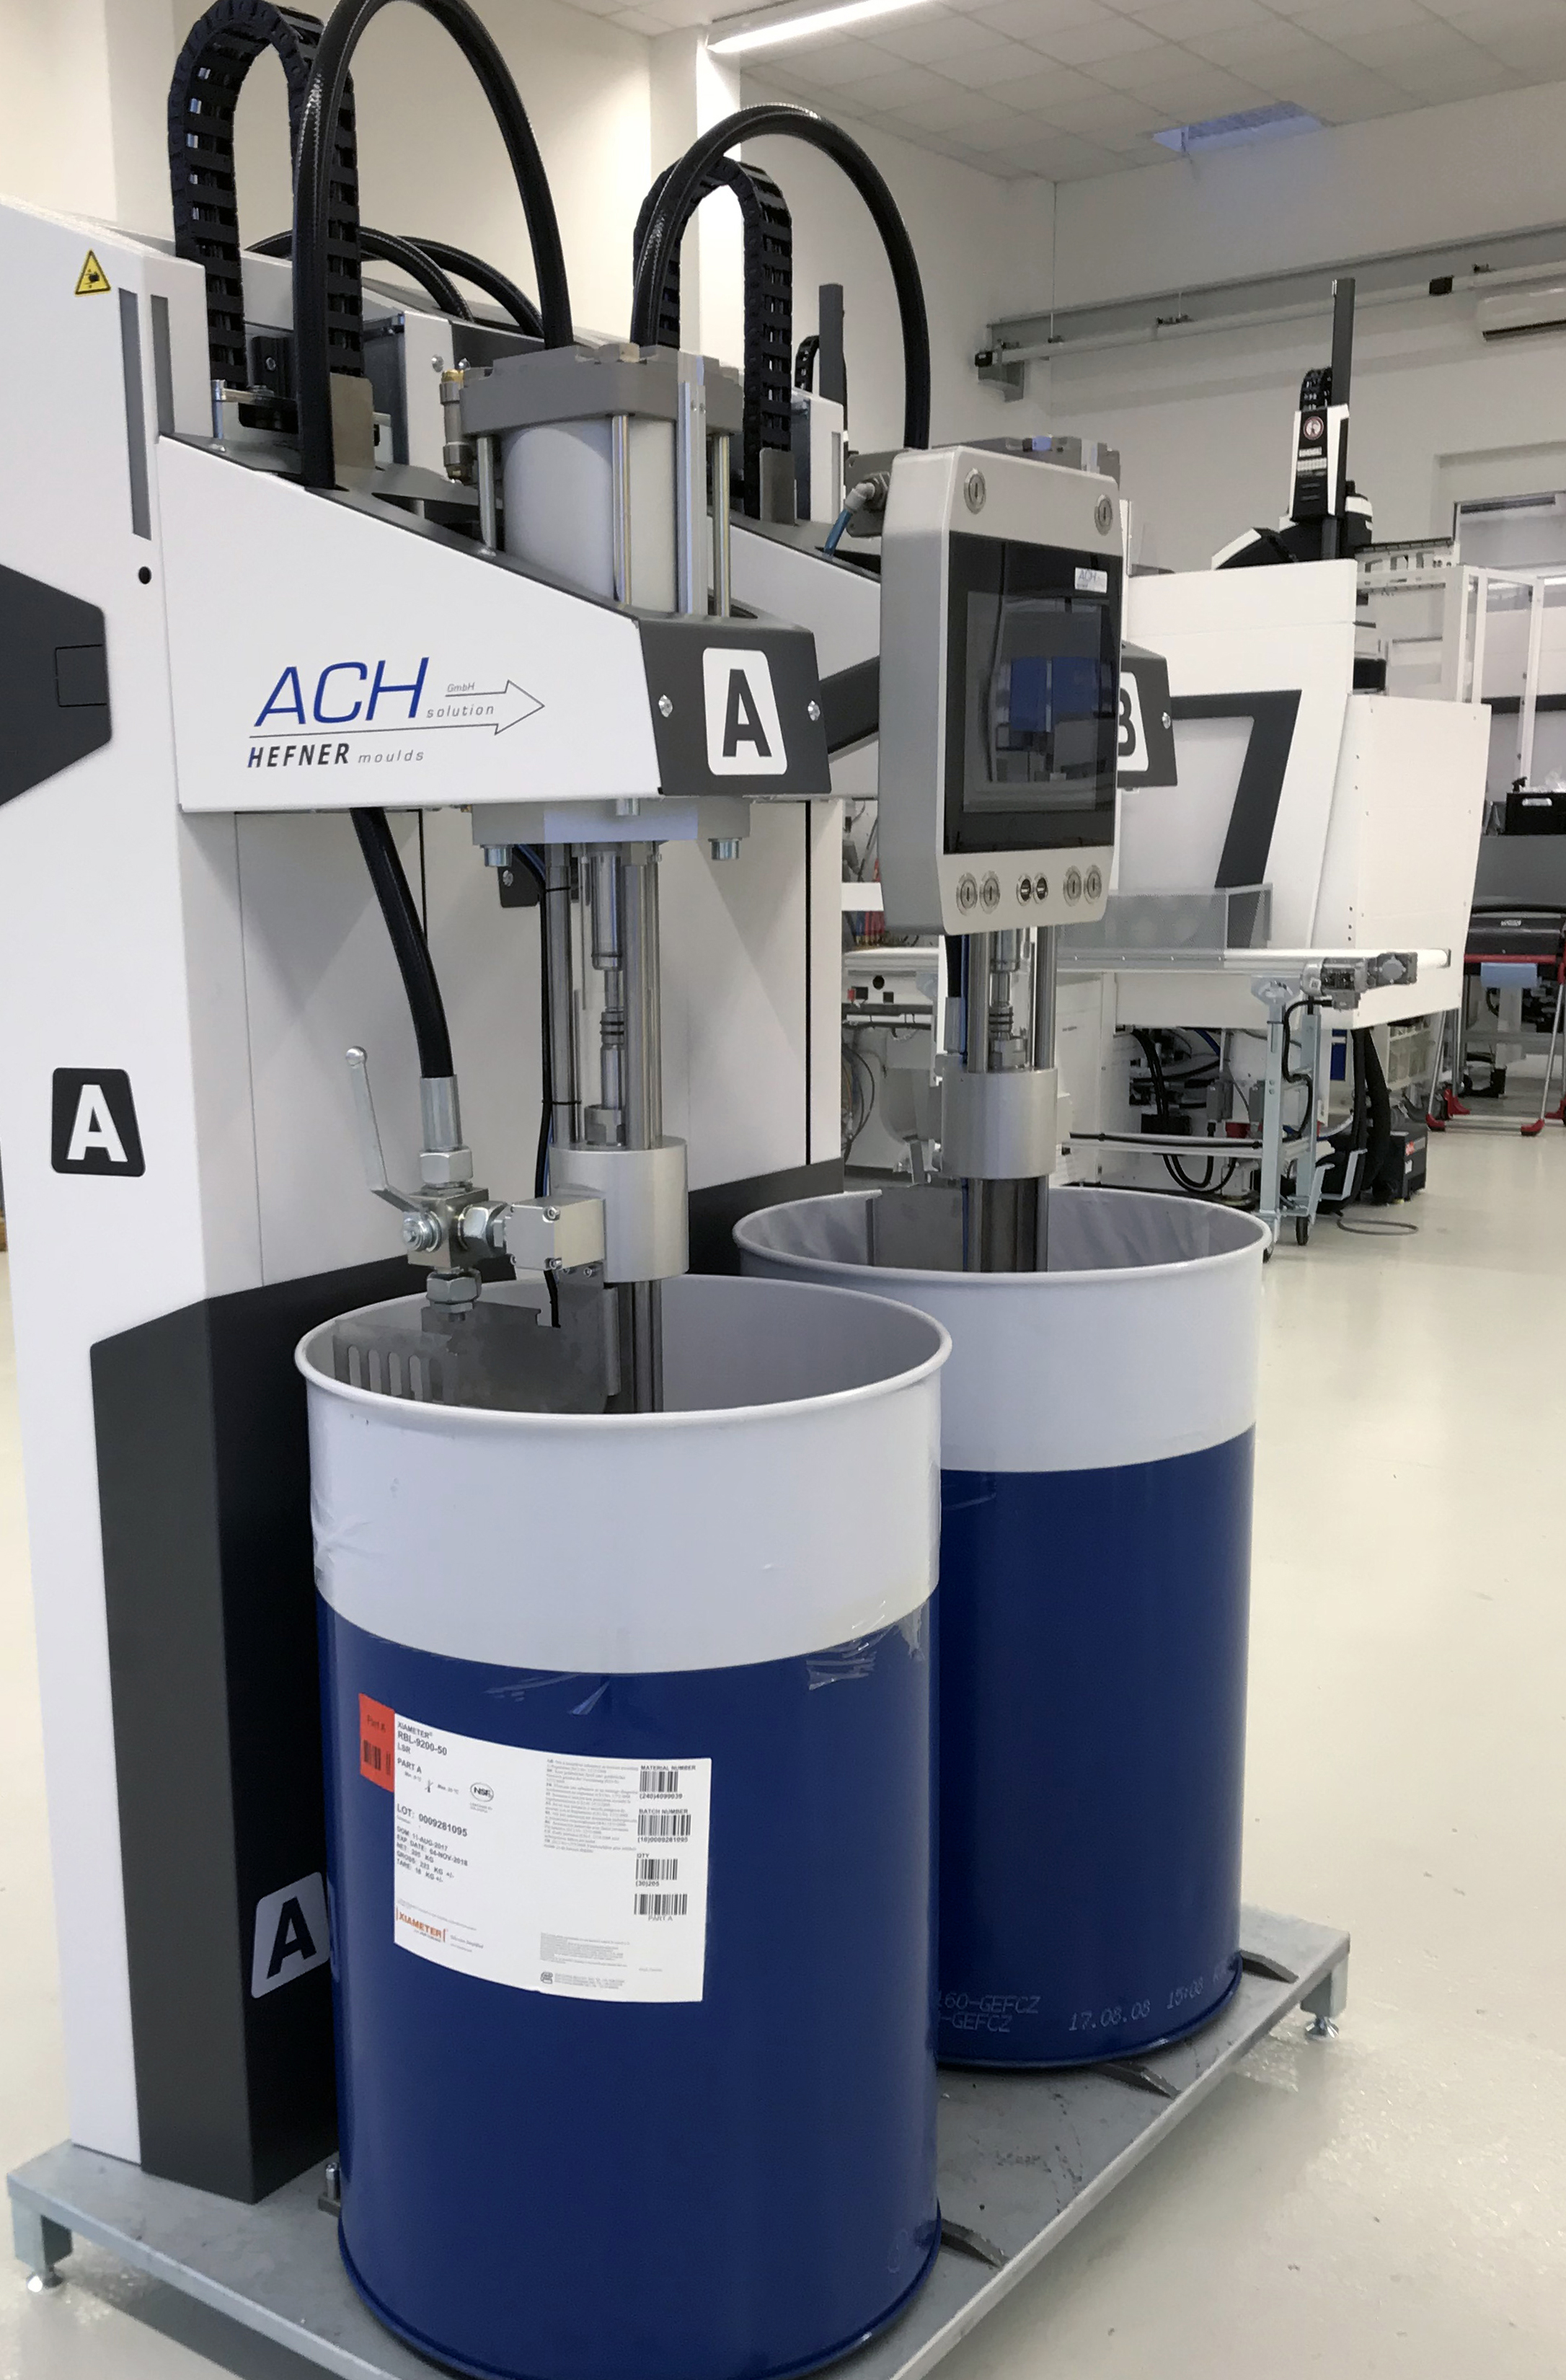 A MaxiMix G2 from ACH-Solution is used for metering the LSR. The entire process can be controlled via the CC300 operating panel of the injection moulding machine. (Source: ACH-Solution)